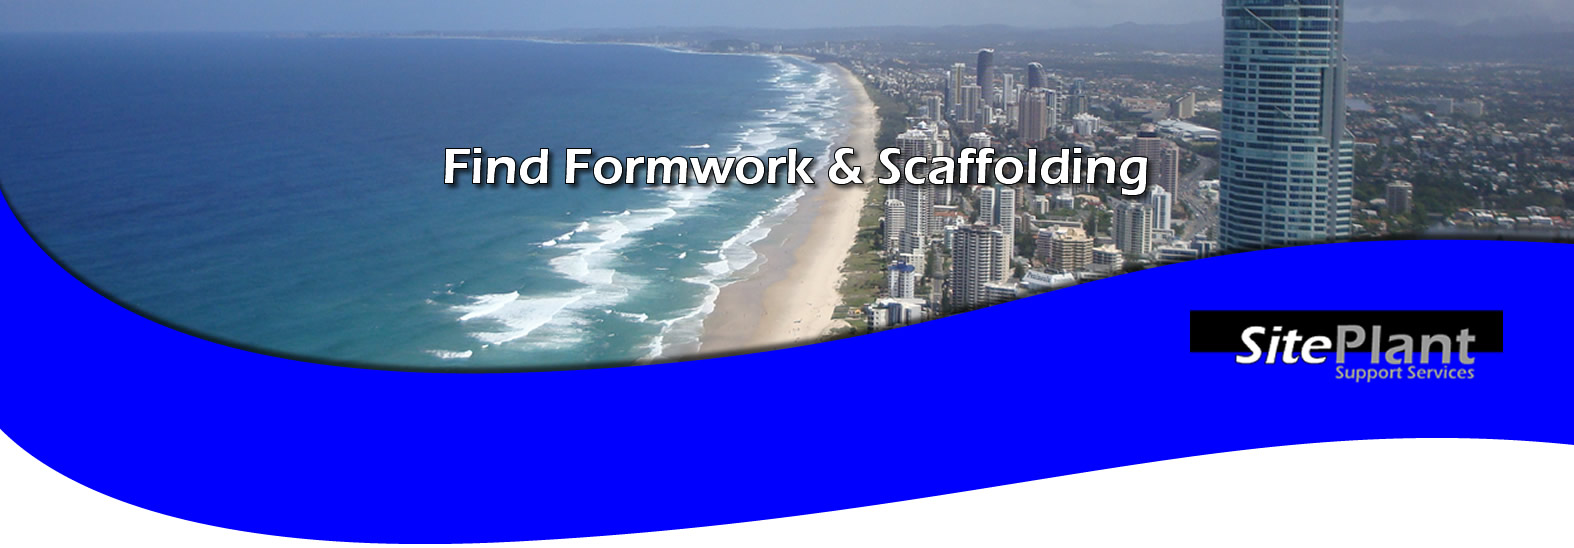 Ways to find Formwork and Scaffolding